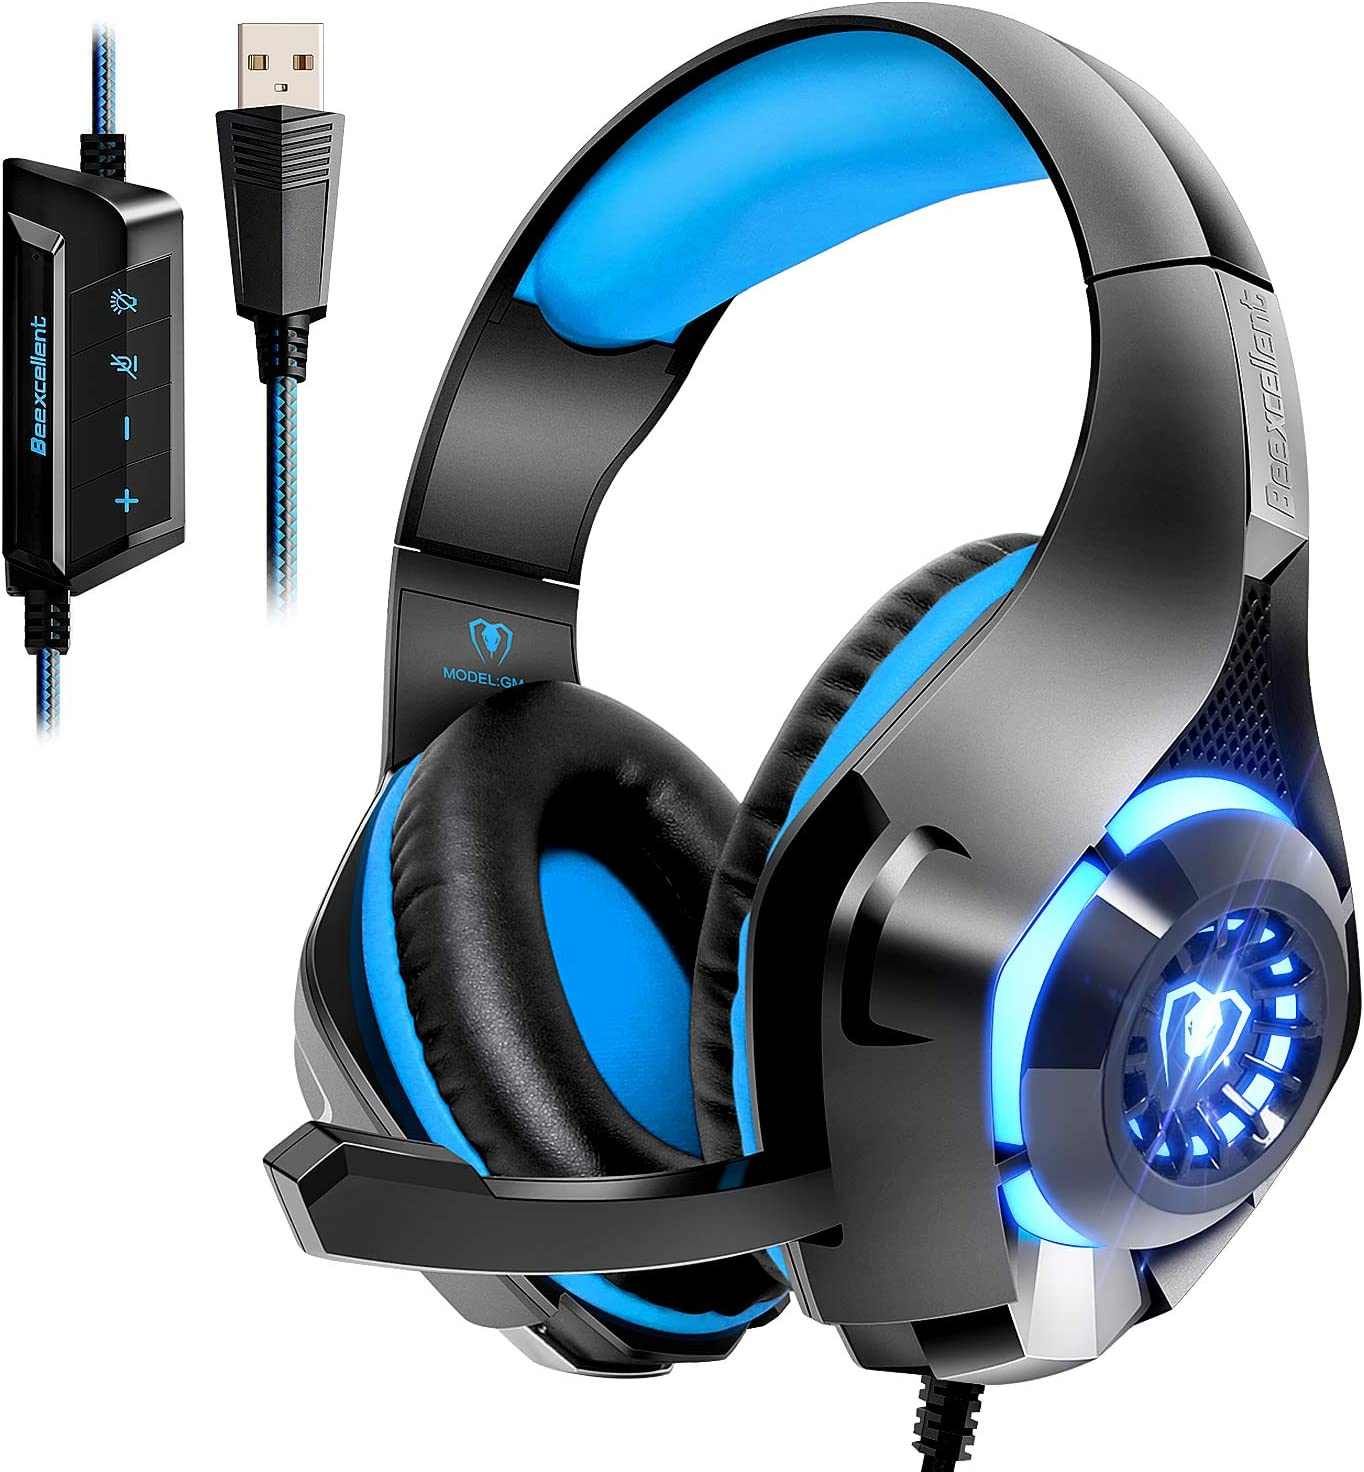 Amazon.com: Beexcellent USB Gaming Headset for PC,7.1 Surround Sound PC  Headset with Noise Canceling Mic Volume Control LED Light for Laptops:  Computers & AccessoriesAmazon.com